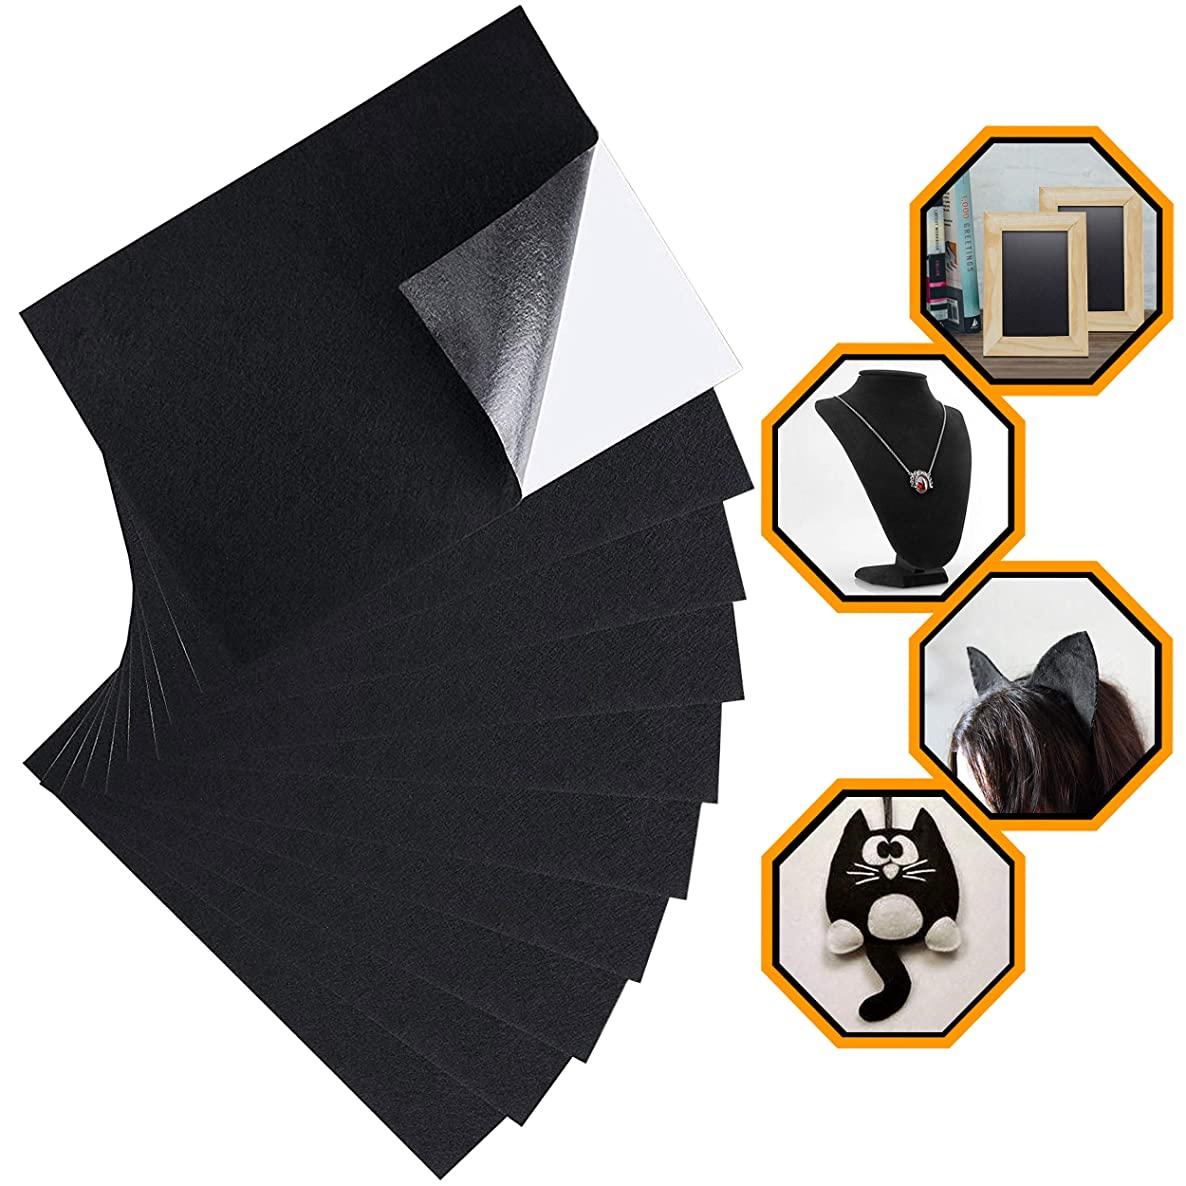 ELV Black Felt Fabric Adhesive Sheets (10 Count) Multipurpose Velvet Sheet with Sticky Glue Back for Art & Crafts, Jewelry Box Liner, Furniture Protector Pads Water Resistant (A4 Size) (Black)